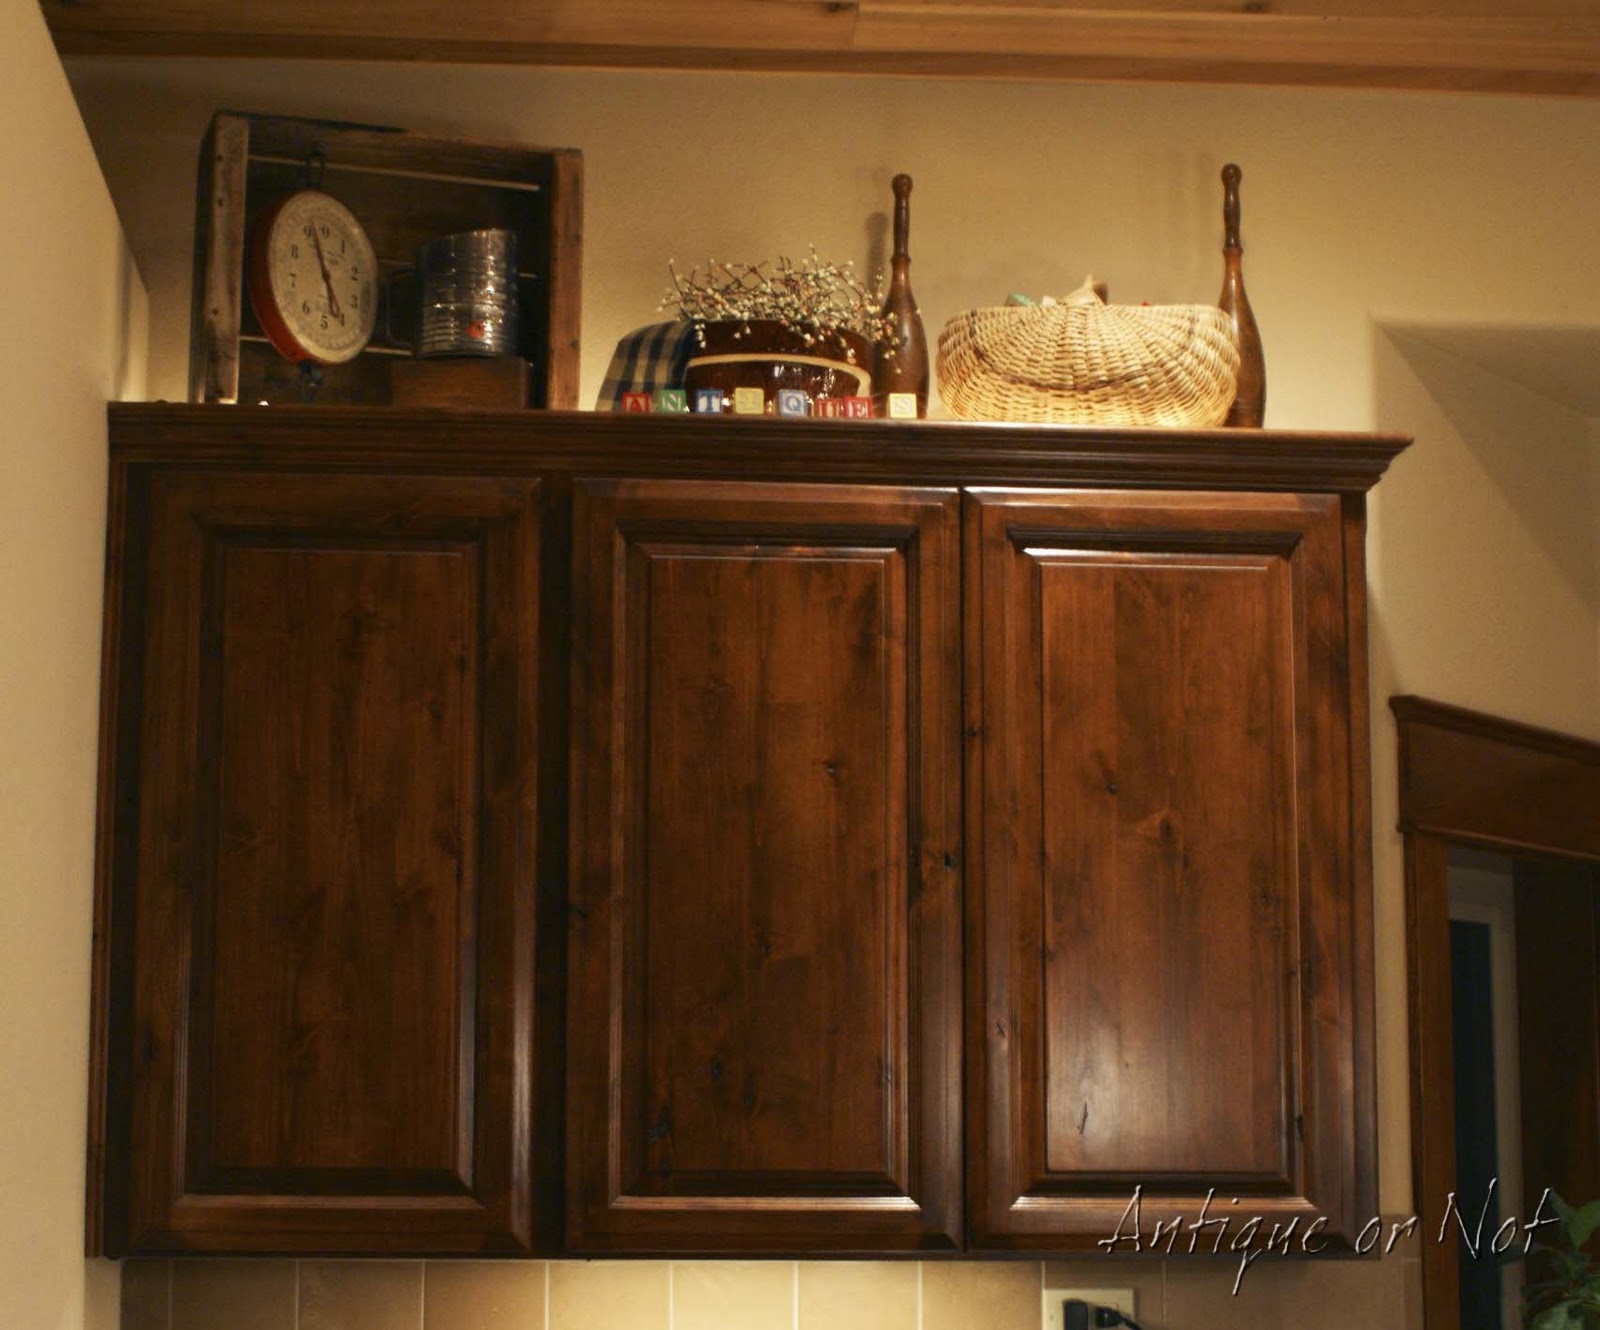 Antique or not decorating above your cabinets How to decorate the top of your kitchen cabinets